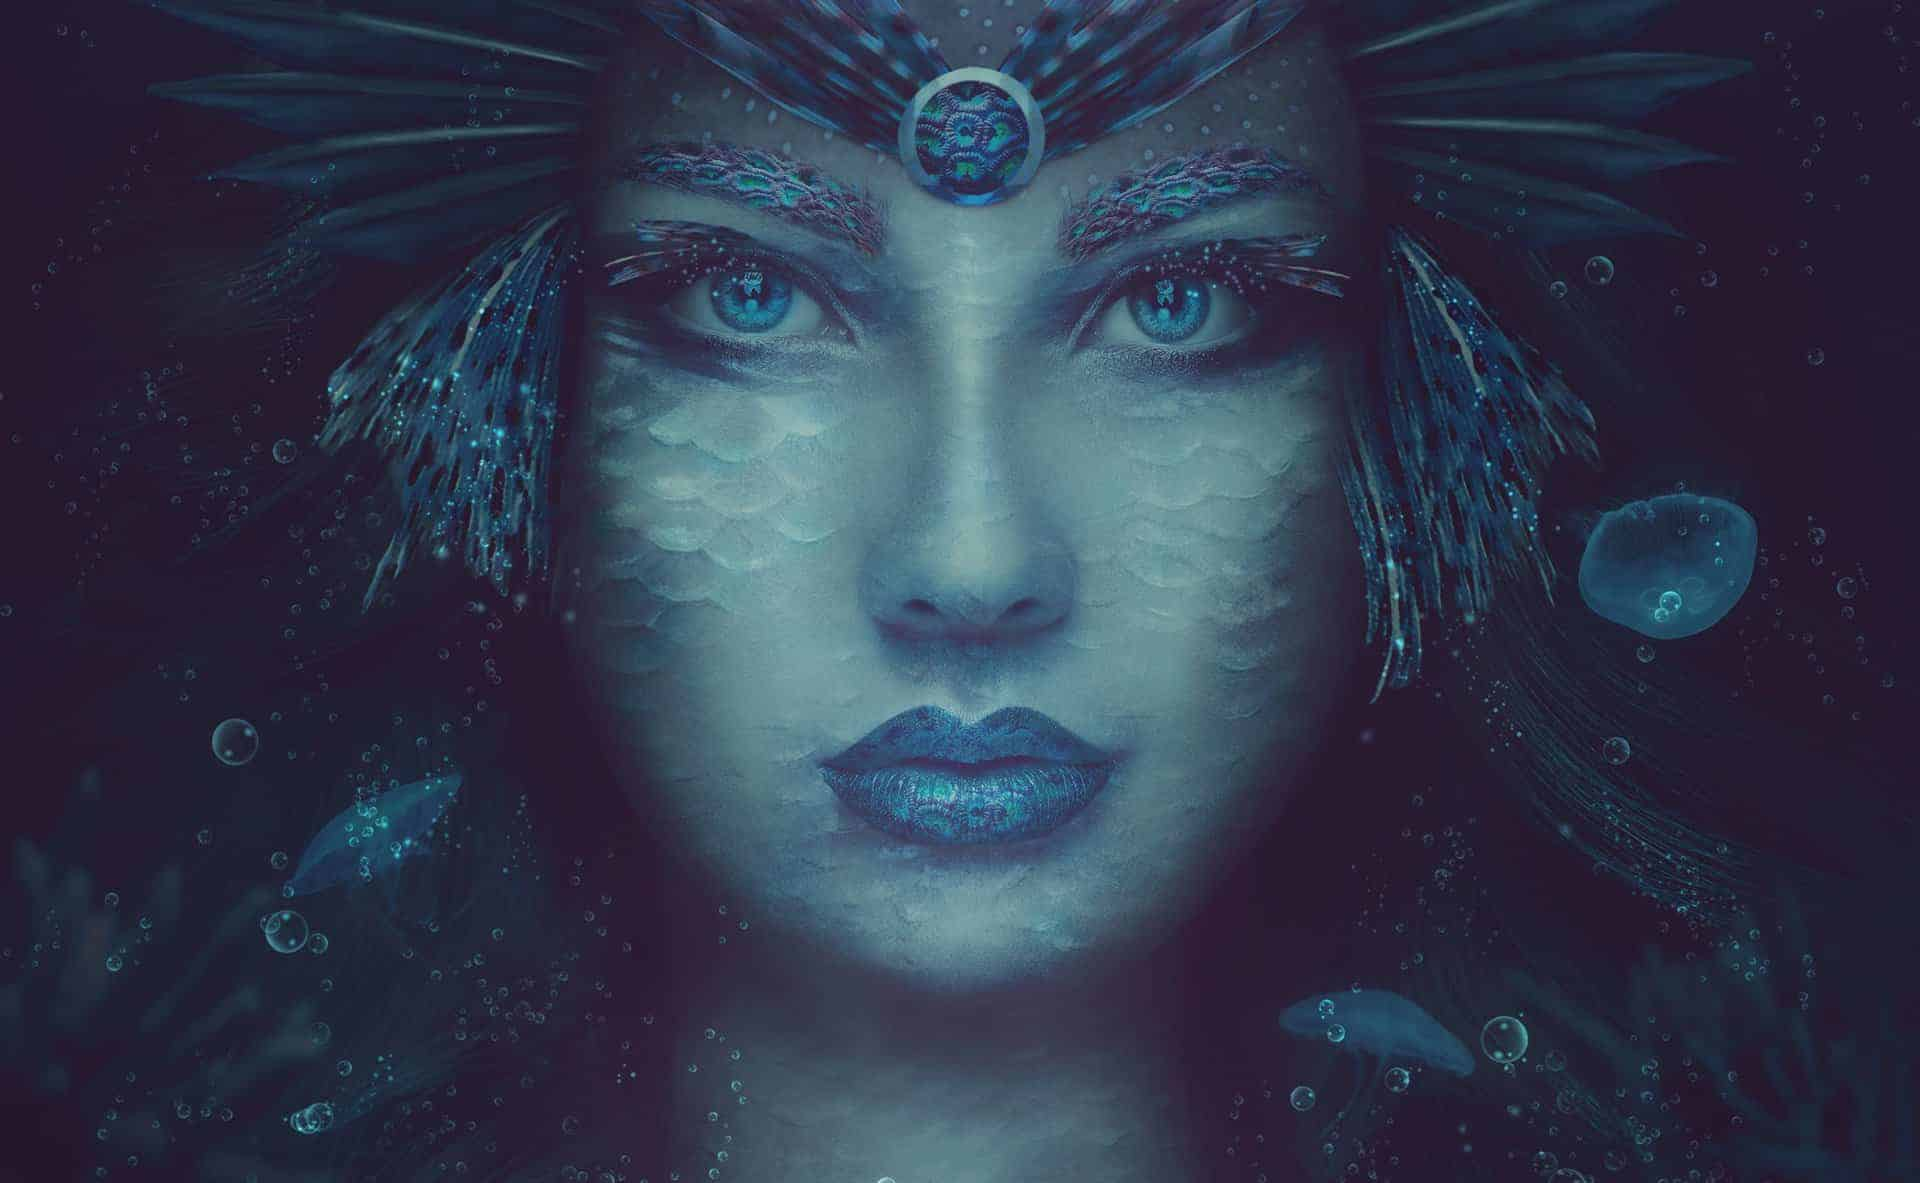 How to Create a Fantasy Sea Woman Portrait Photo Manipulation with Adobe Photoshop